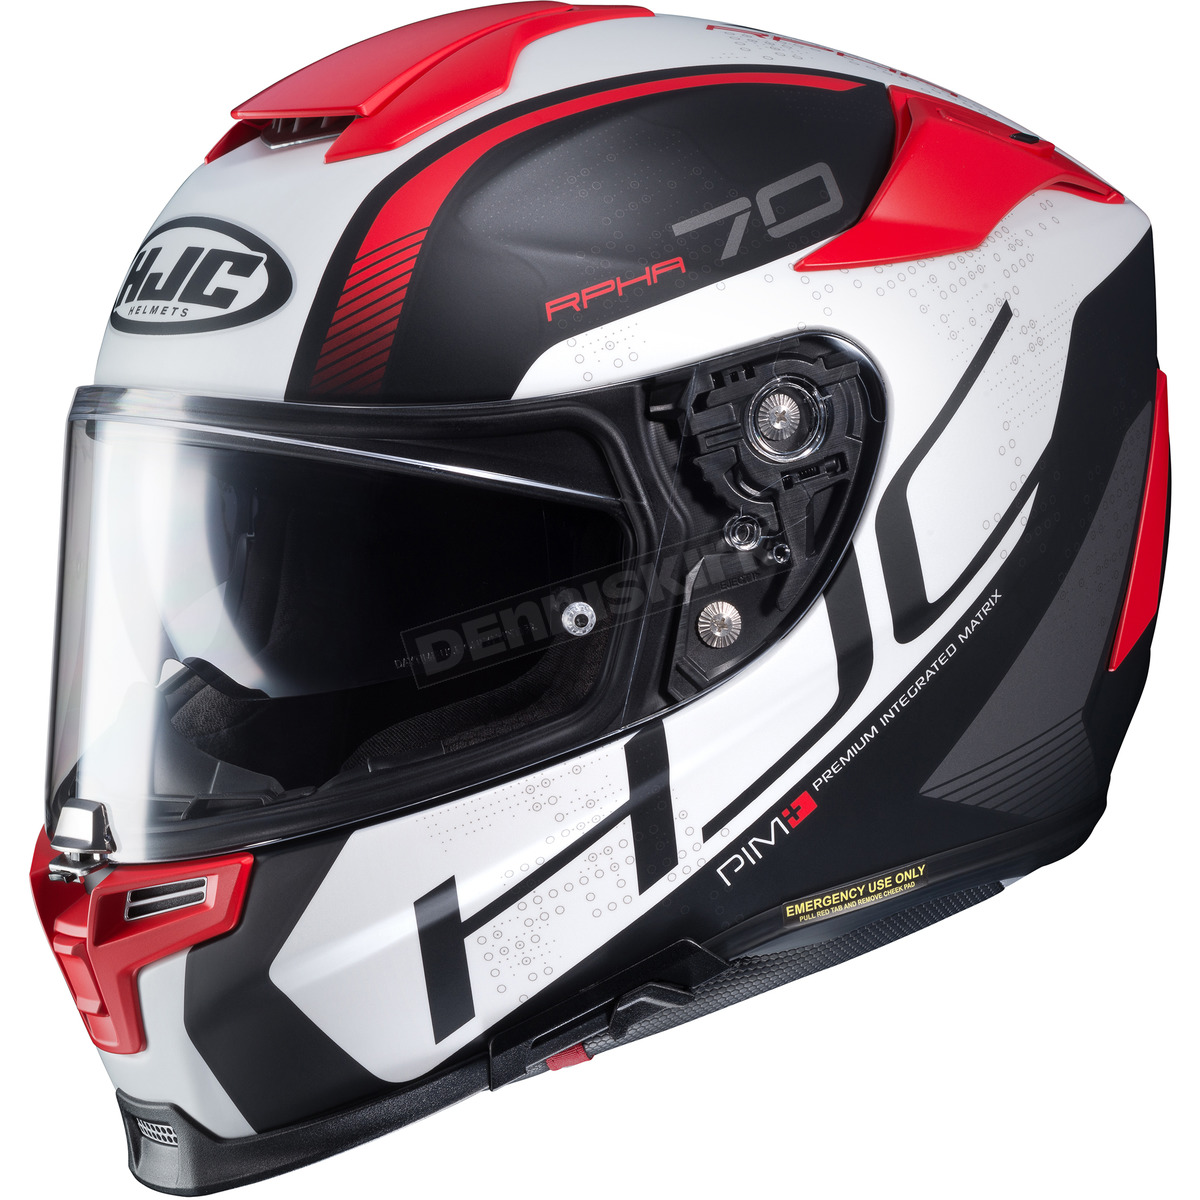 87a53a0a HJC Semi-Flat White/Black/Red RPHA-70 ST Vias MC-1SF Helmet - 0804 ...